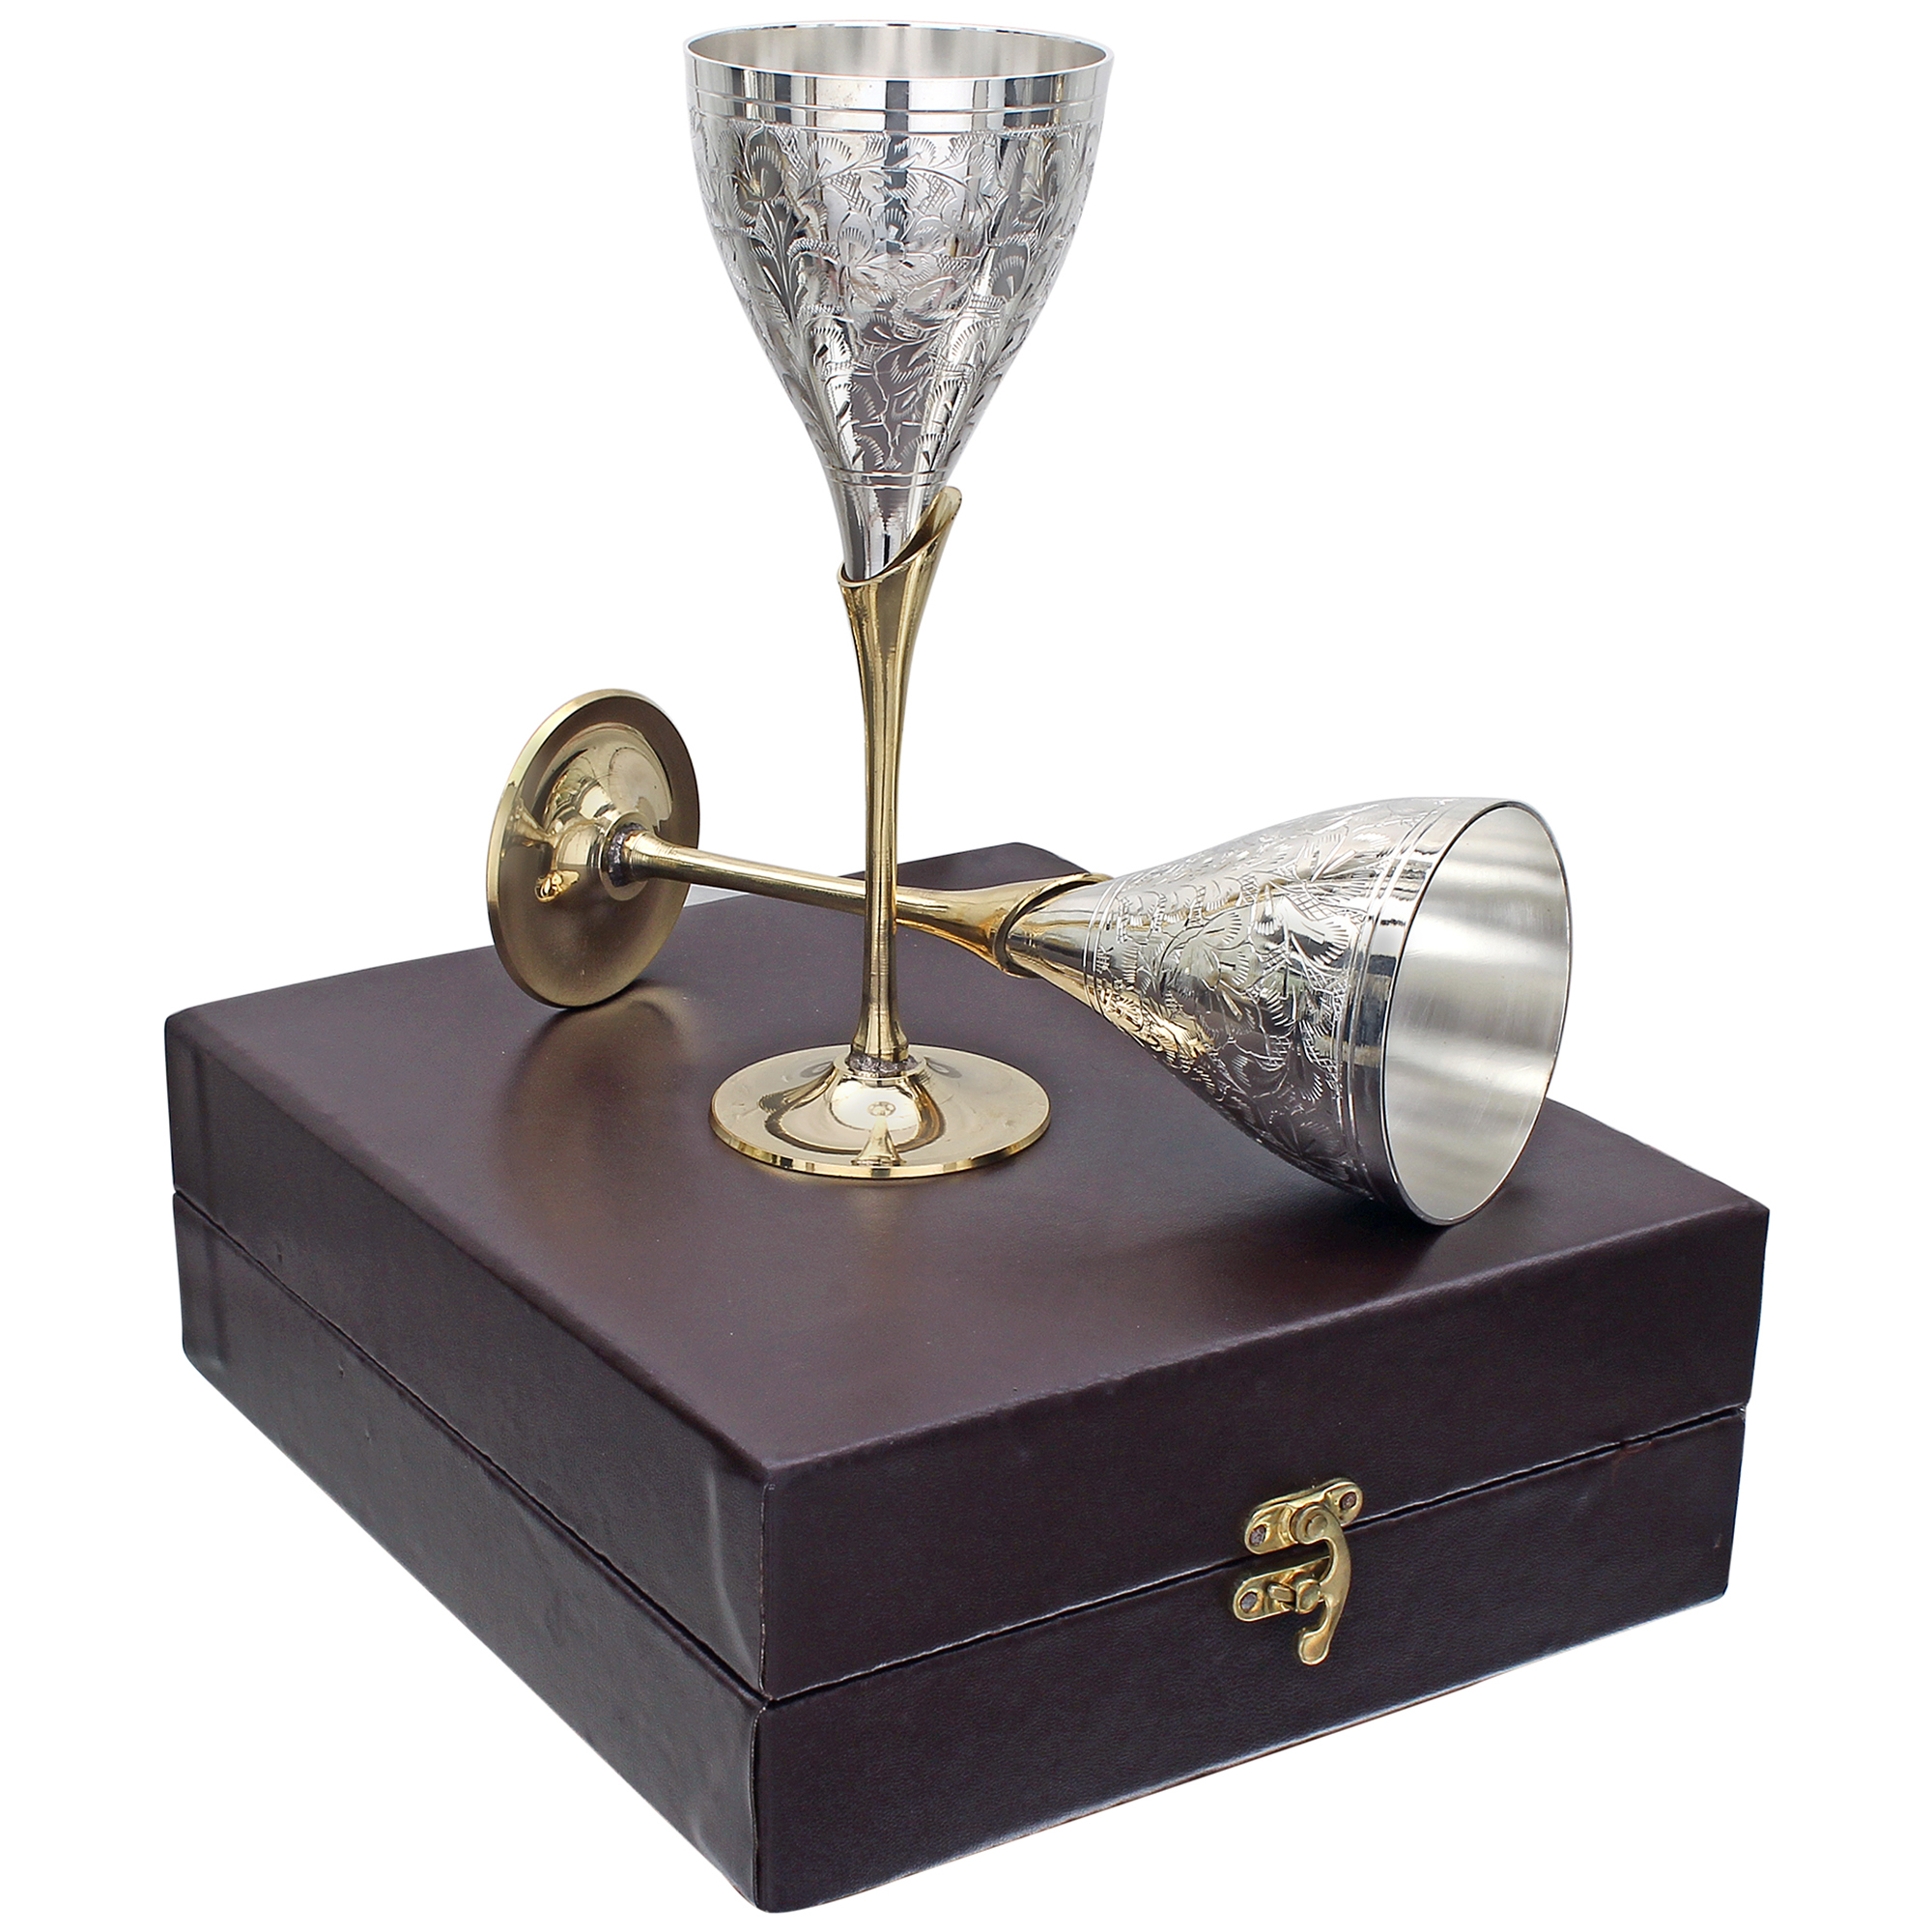 Handmade Brass Royal Wine Glass Goblet Set Of 2 In Gift Box